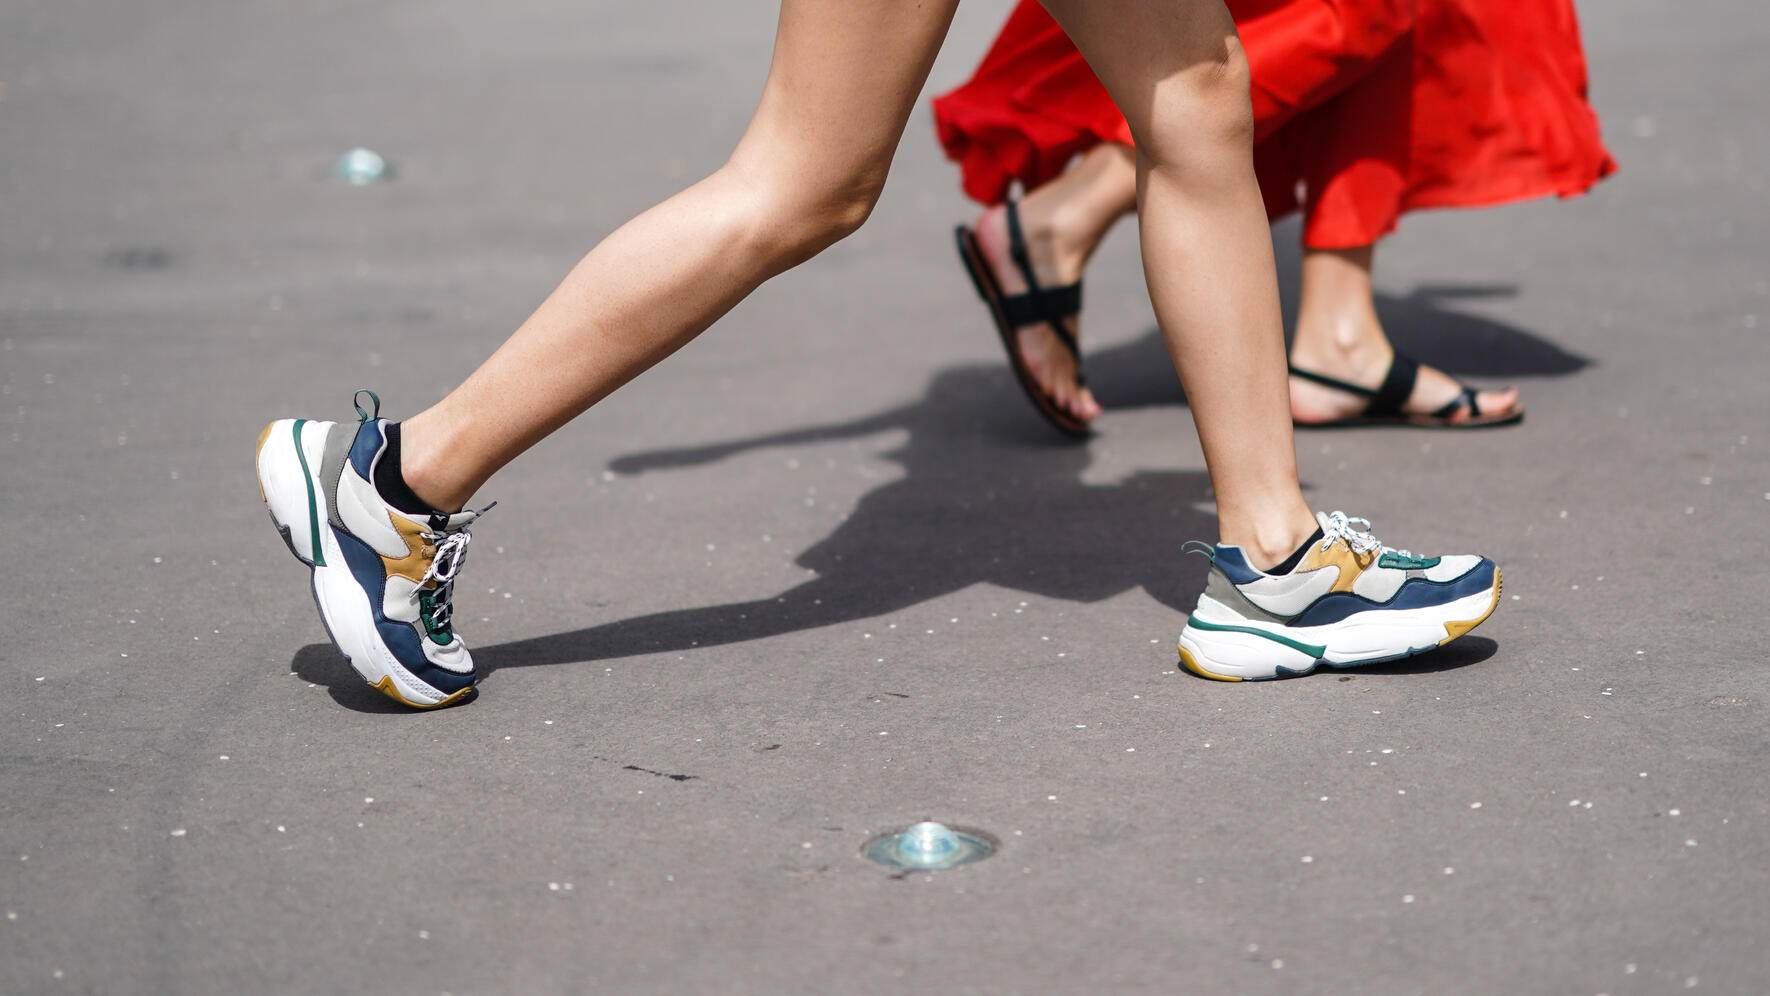 PARIS, FRANCE - JUNE 19: A guest wears colorful sneakers, outside Acne Studios, during Paris Fashion Week - Menswear Spring/Summer 2020, on June 19, 2019 in Paris, France. (Photo by Edward Berthelot/Getty Images)